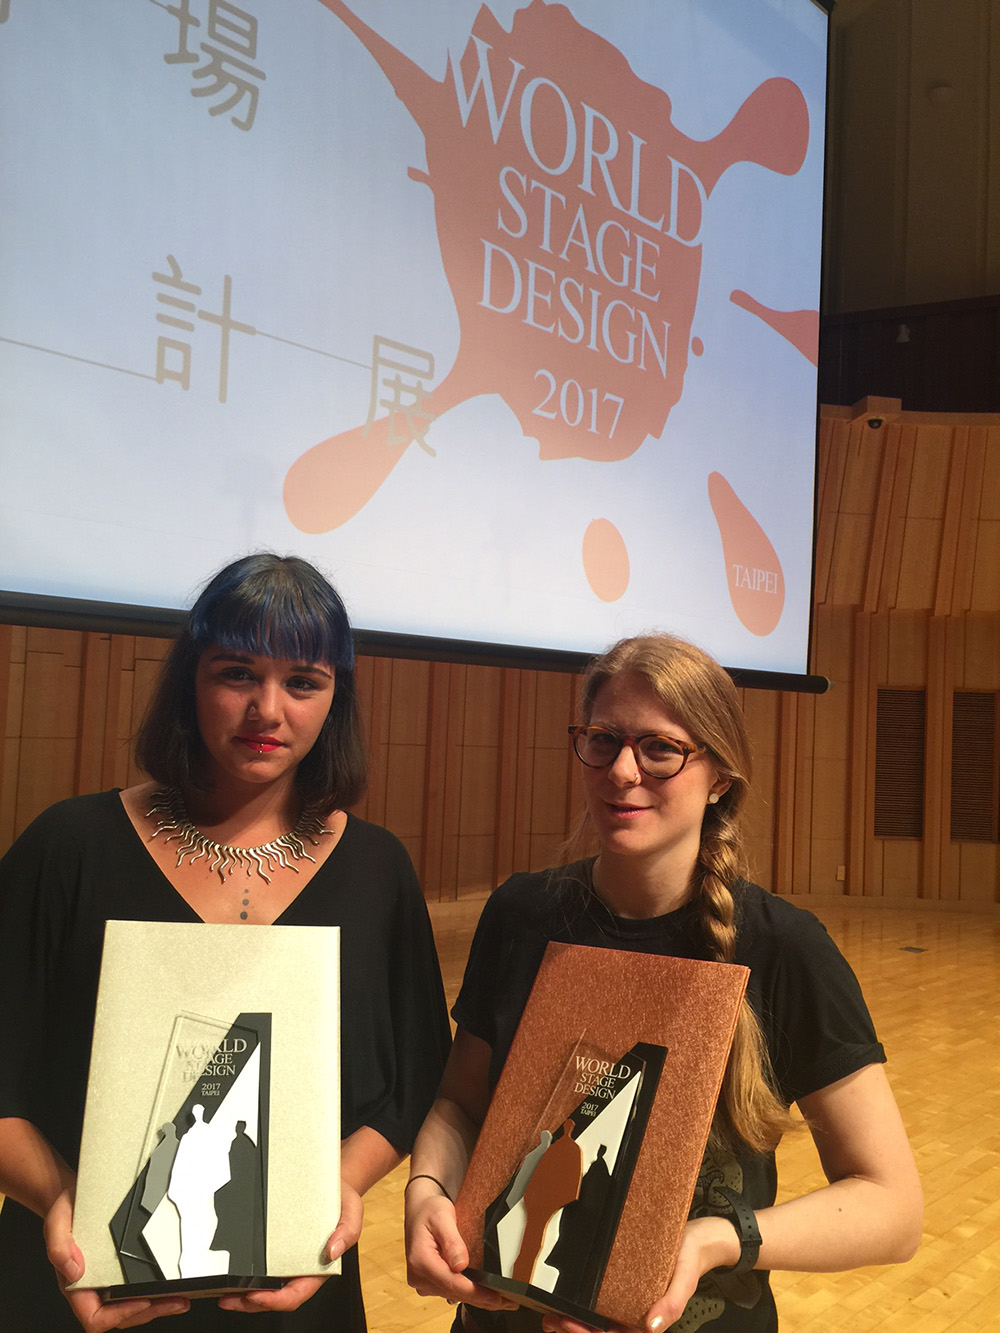 Alumnas Daphne Karstens and Clare McGarrigle win at World Stage Design Exhibition.